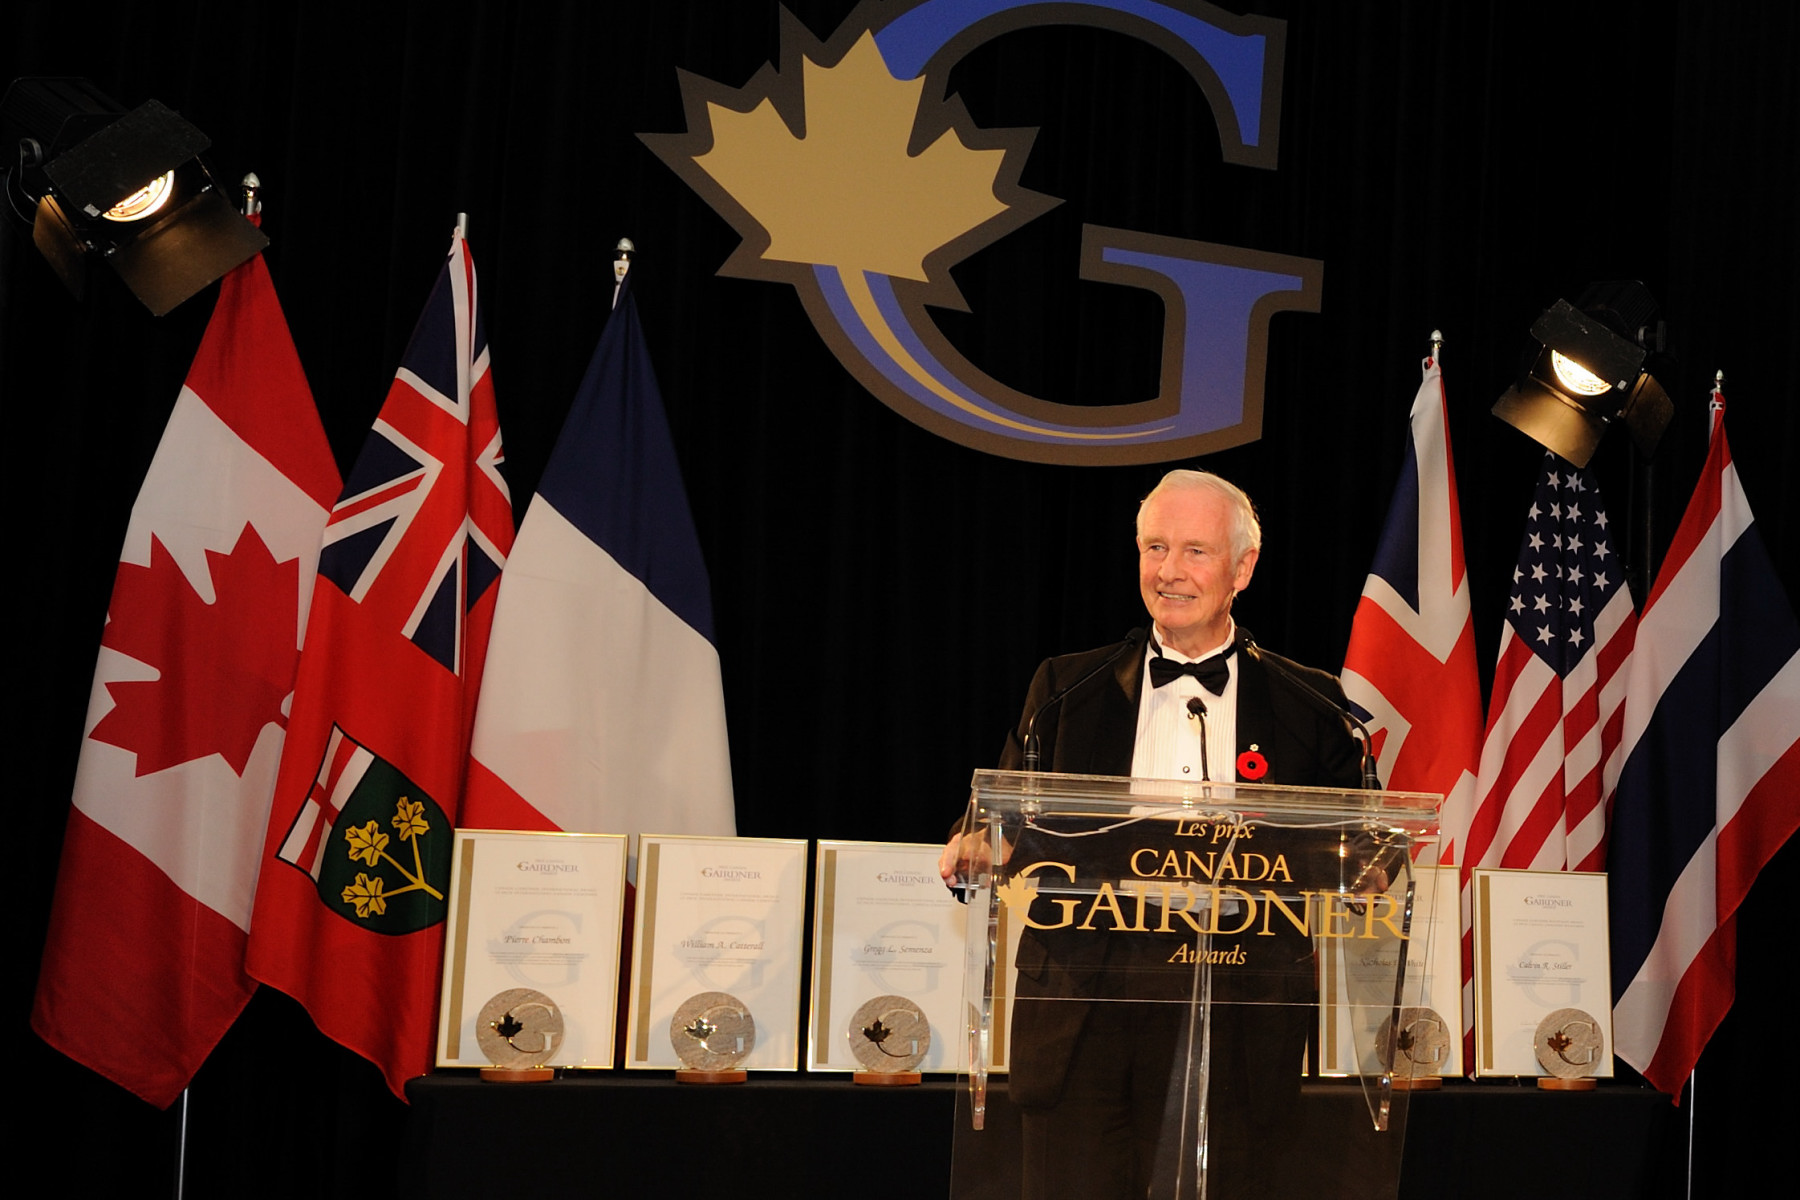 The Governor General delivered a keynote address on the important leadership role the Gairdner Foundation plays in recognizing innovative research, as well as the value of science research to Canada.